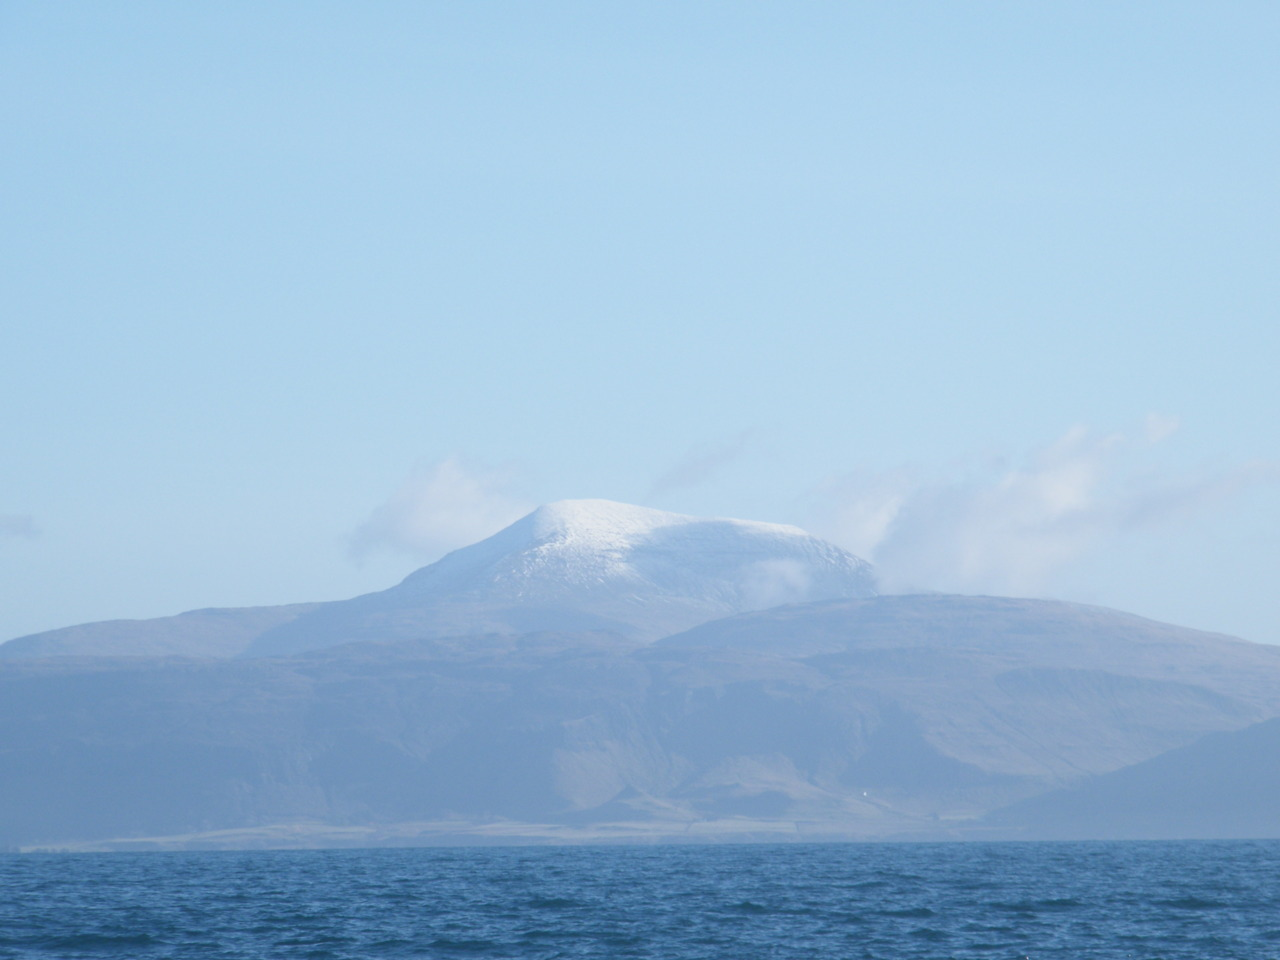 Snow covered Ben More Mountain, taken from the West